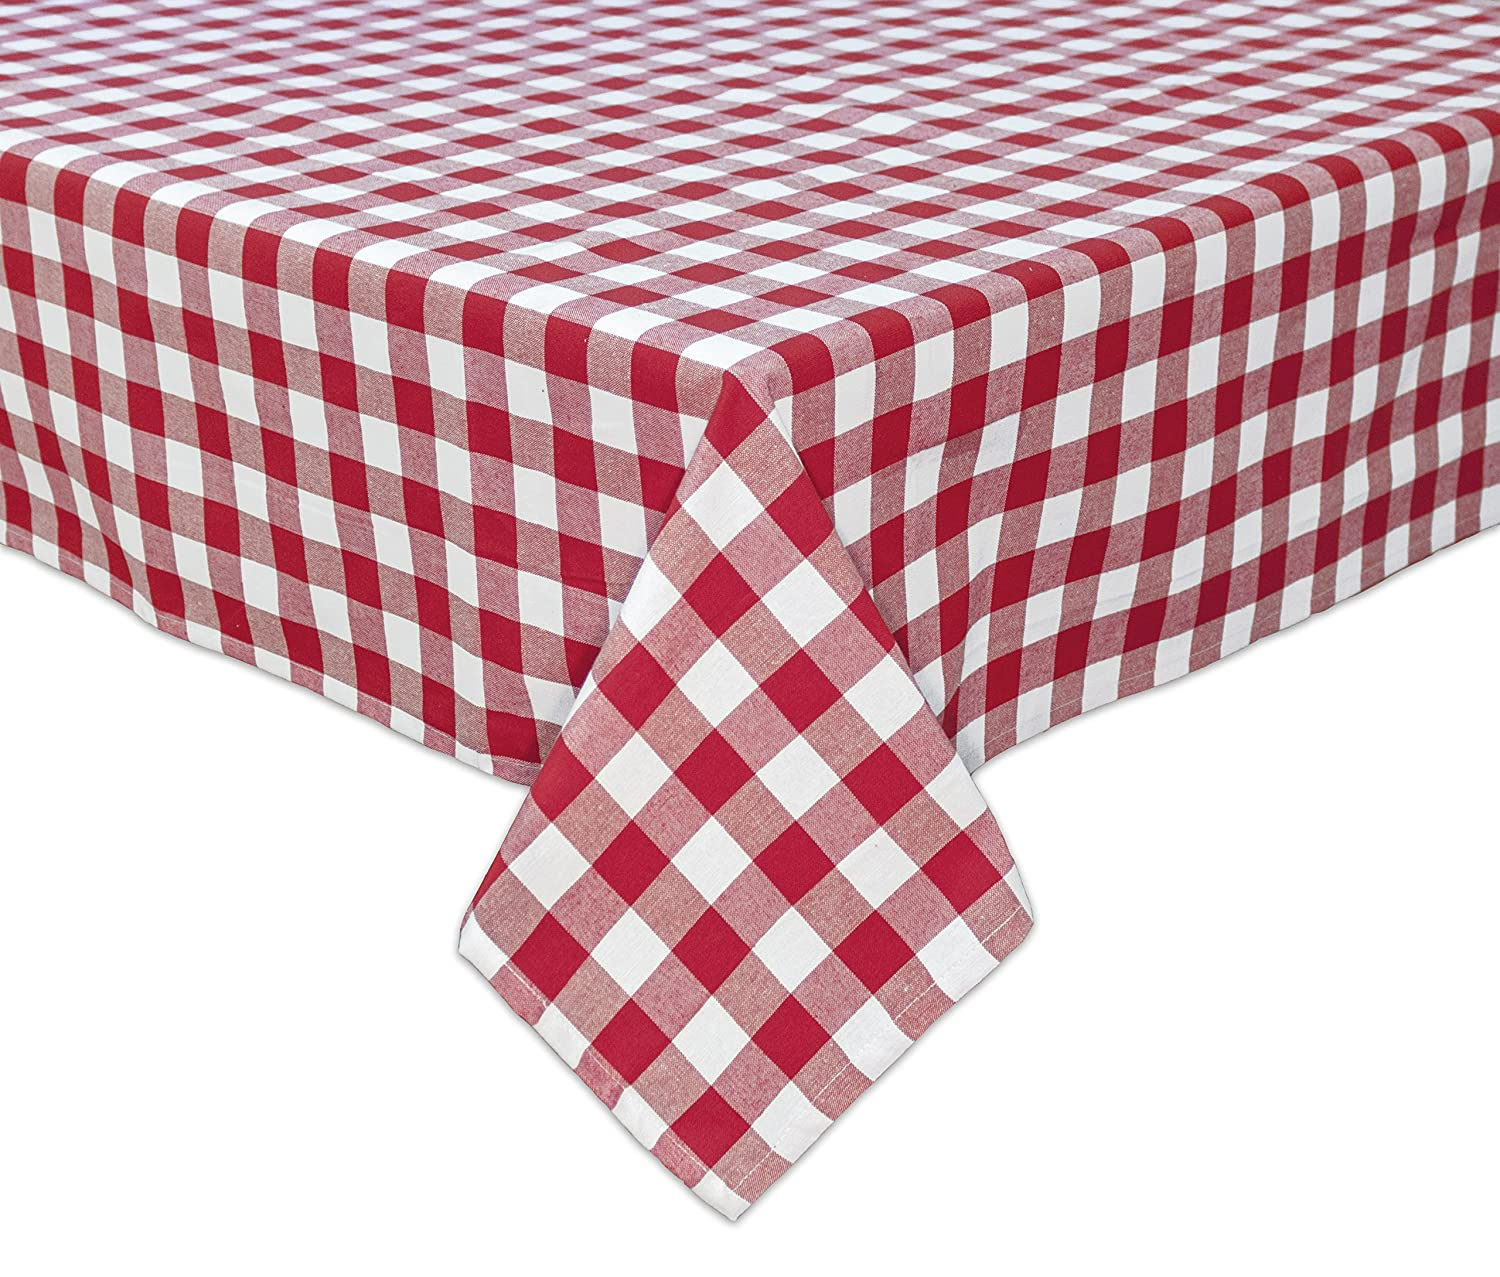 RED OR BLUE SUMMER TABLECLOTH SET  WITH 4 CLAMPS